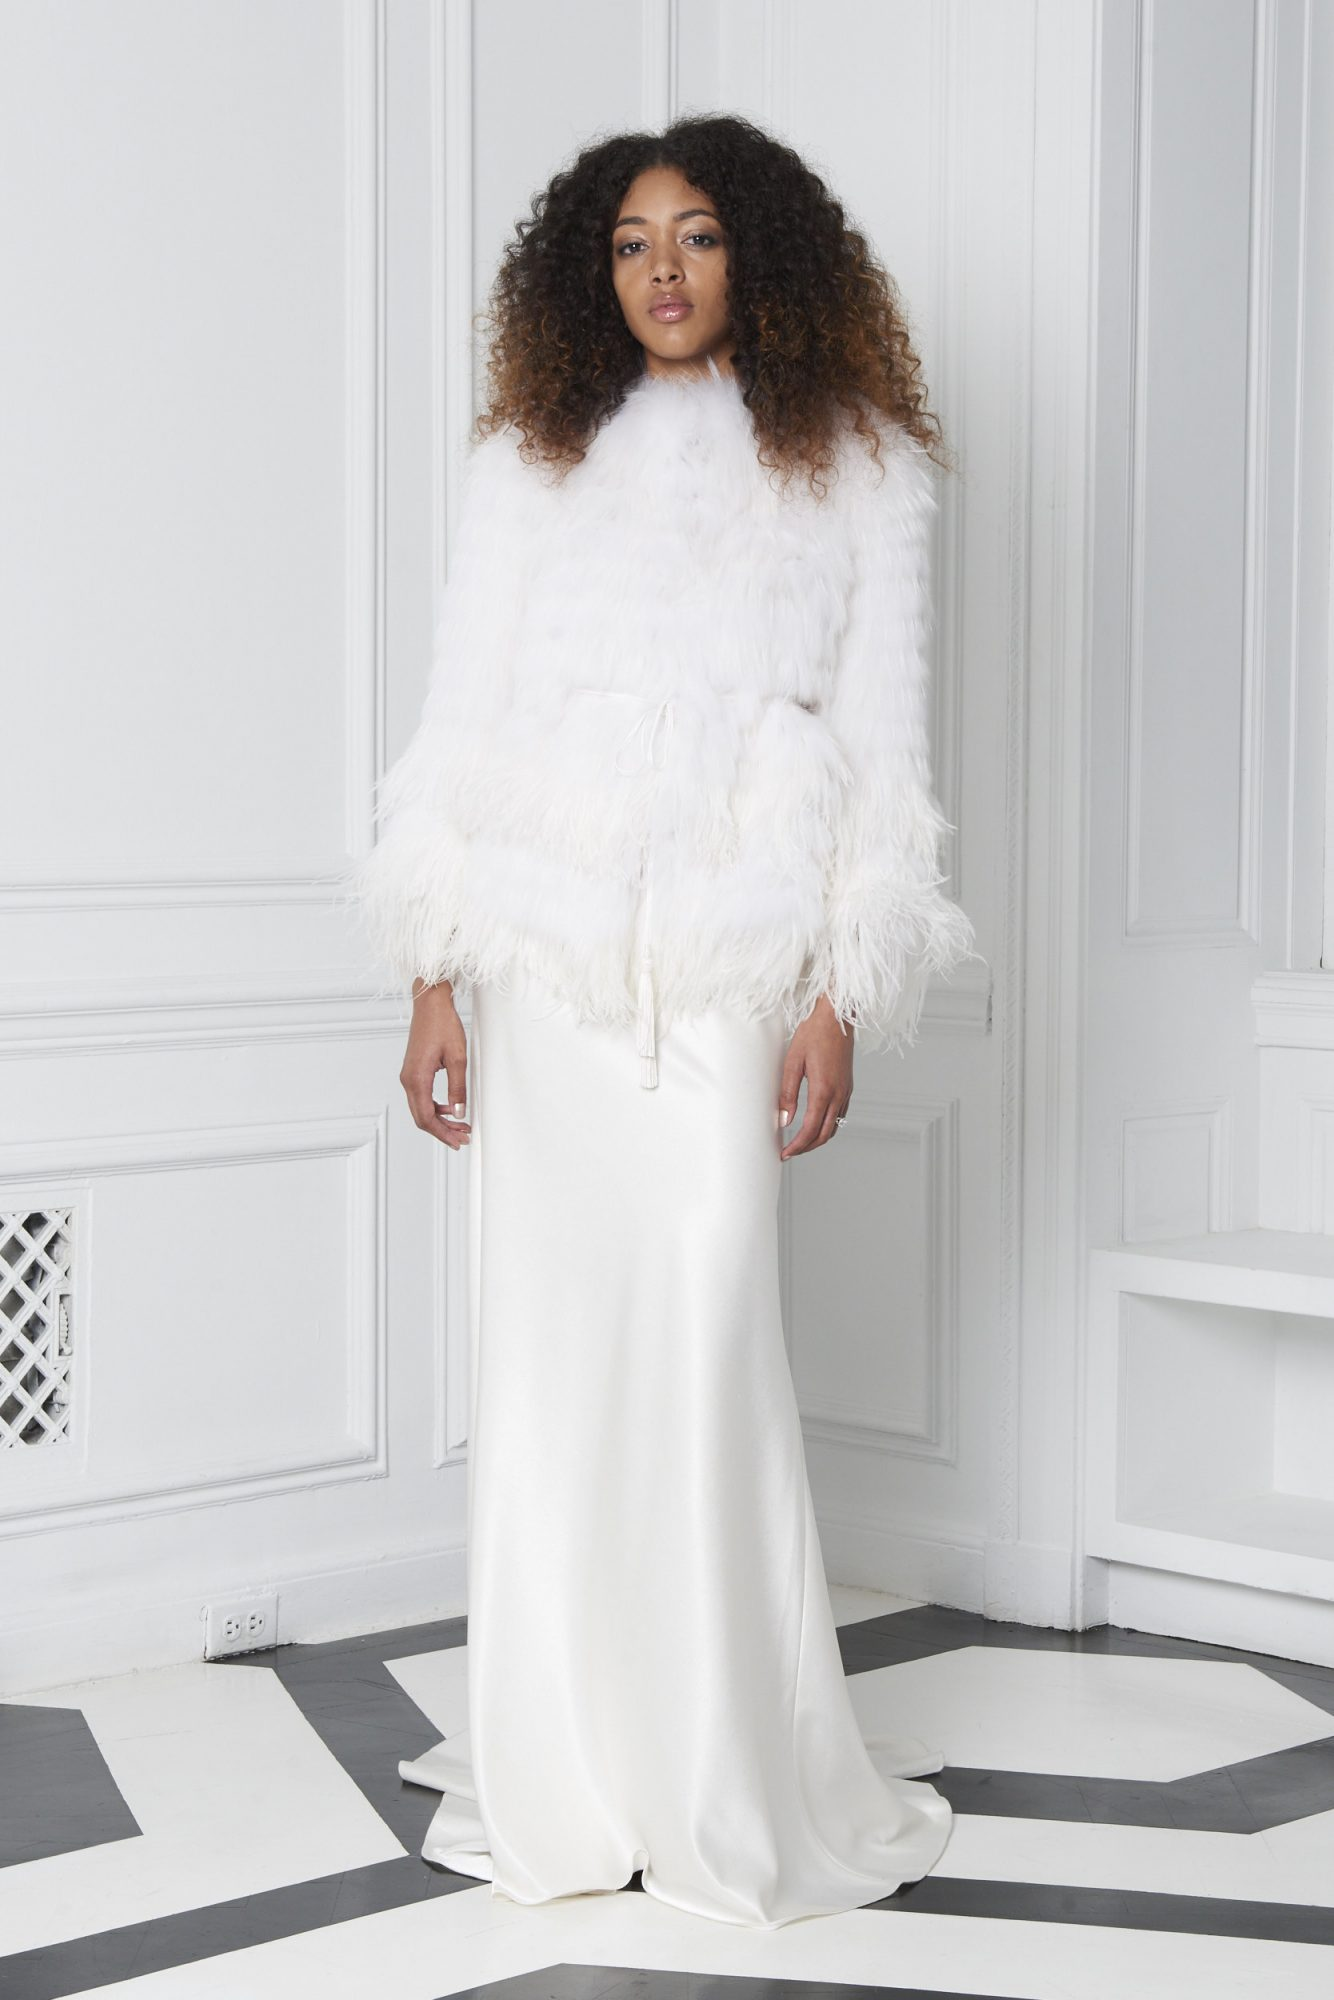 Monique Lhuillier Bliss Fall 2018 Silk Sheath Wedding Dress with Feather Jacket